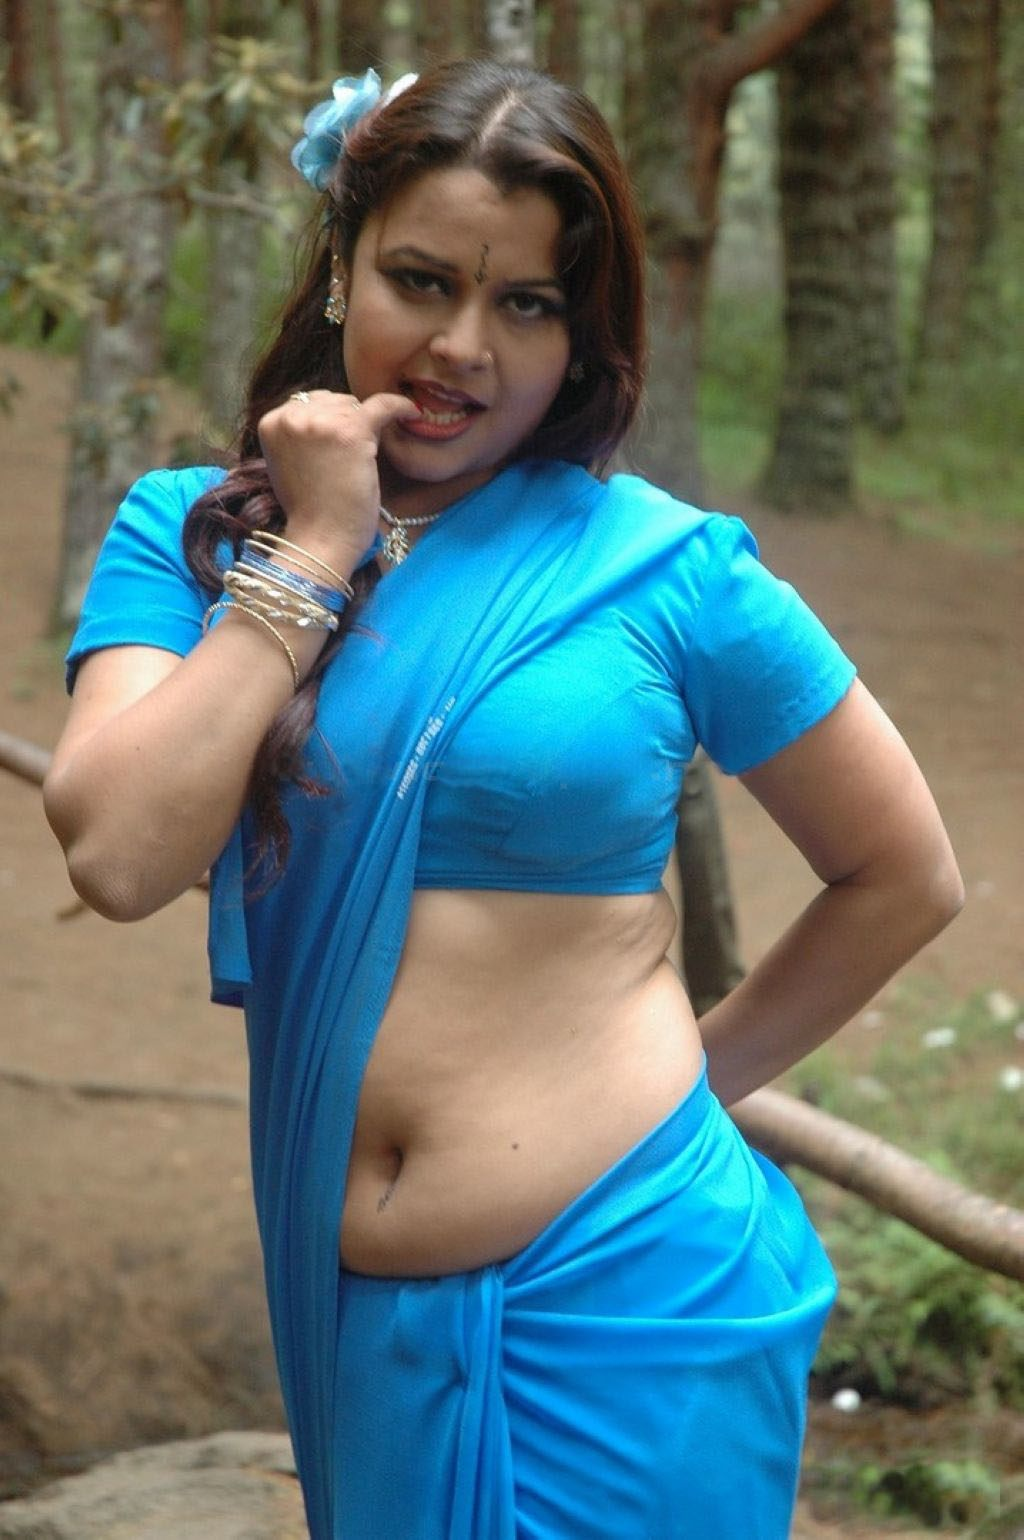 photo canadian sexy masala porn girl